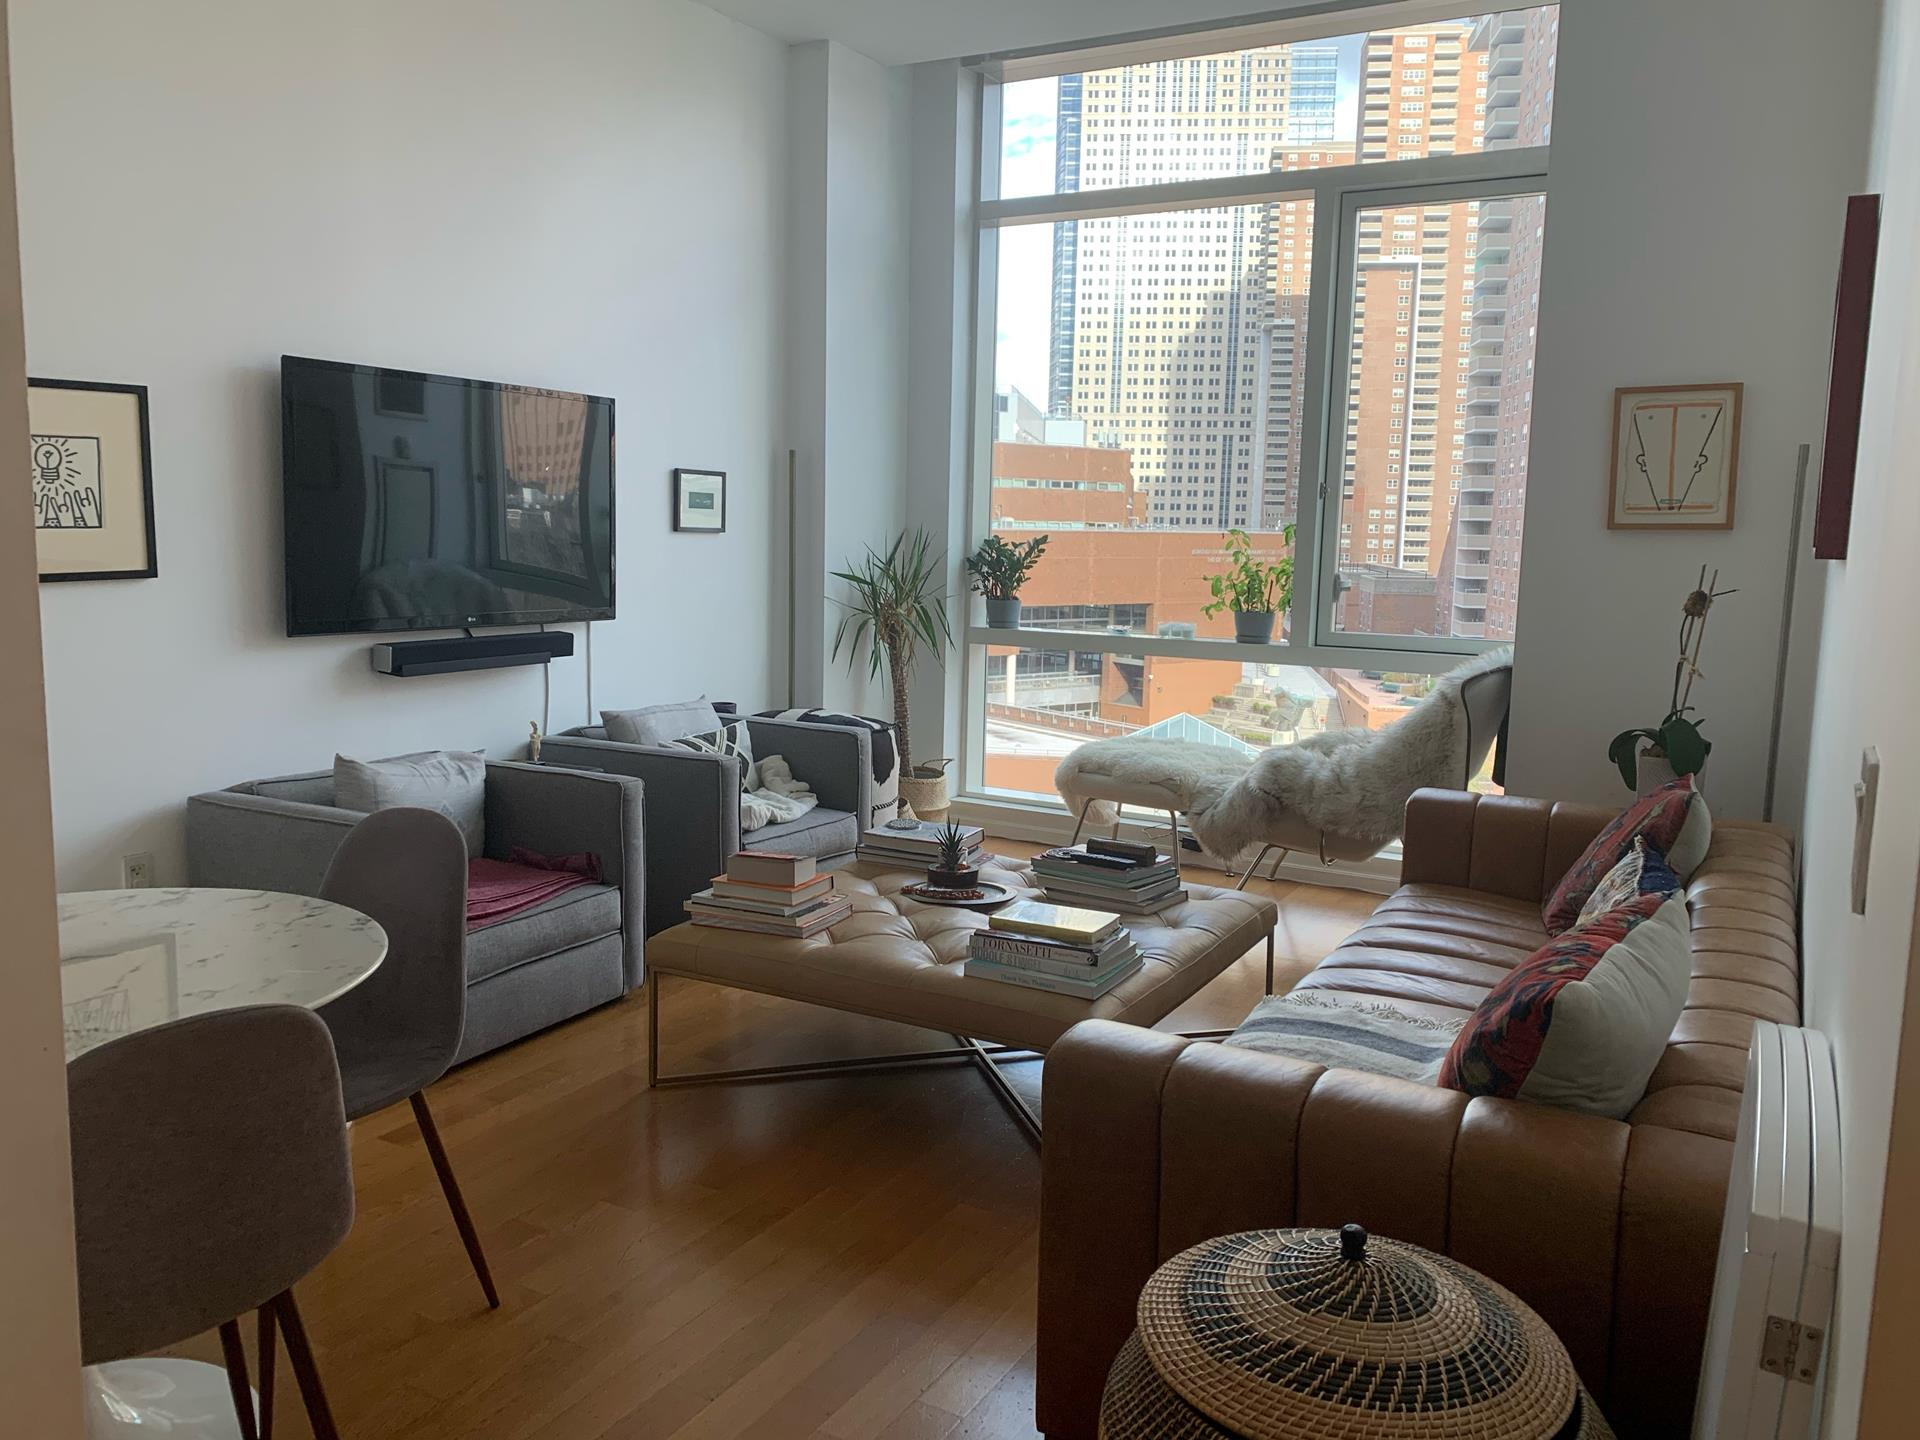 A one bed with 11 FOOT CEILINGS & open kitchen! This top of the line 7th floor apartment looks onto a water/bridge view as well as tennis court/park views. See trees & water from your living room and bedroom window in this super 5 star condo building  and all the amenities that it has to offer. A 50ft indoor heated swimming pool & gym as well as a 5,000 sq. ft. terrace where you can watch all the activity of TRIBECA! Don't forget this is a 24 hour doorman building  and is pet friendly. Be a part of Tribeca and experience 200 Chambers rent this today! This one will not last! Thank you for visiting our website and please come back. Brokers collect your own fee.